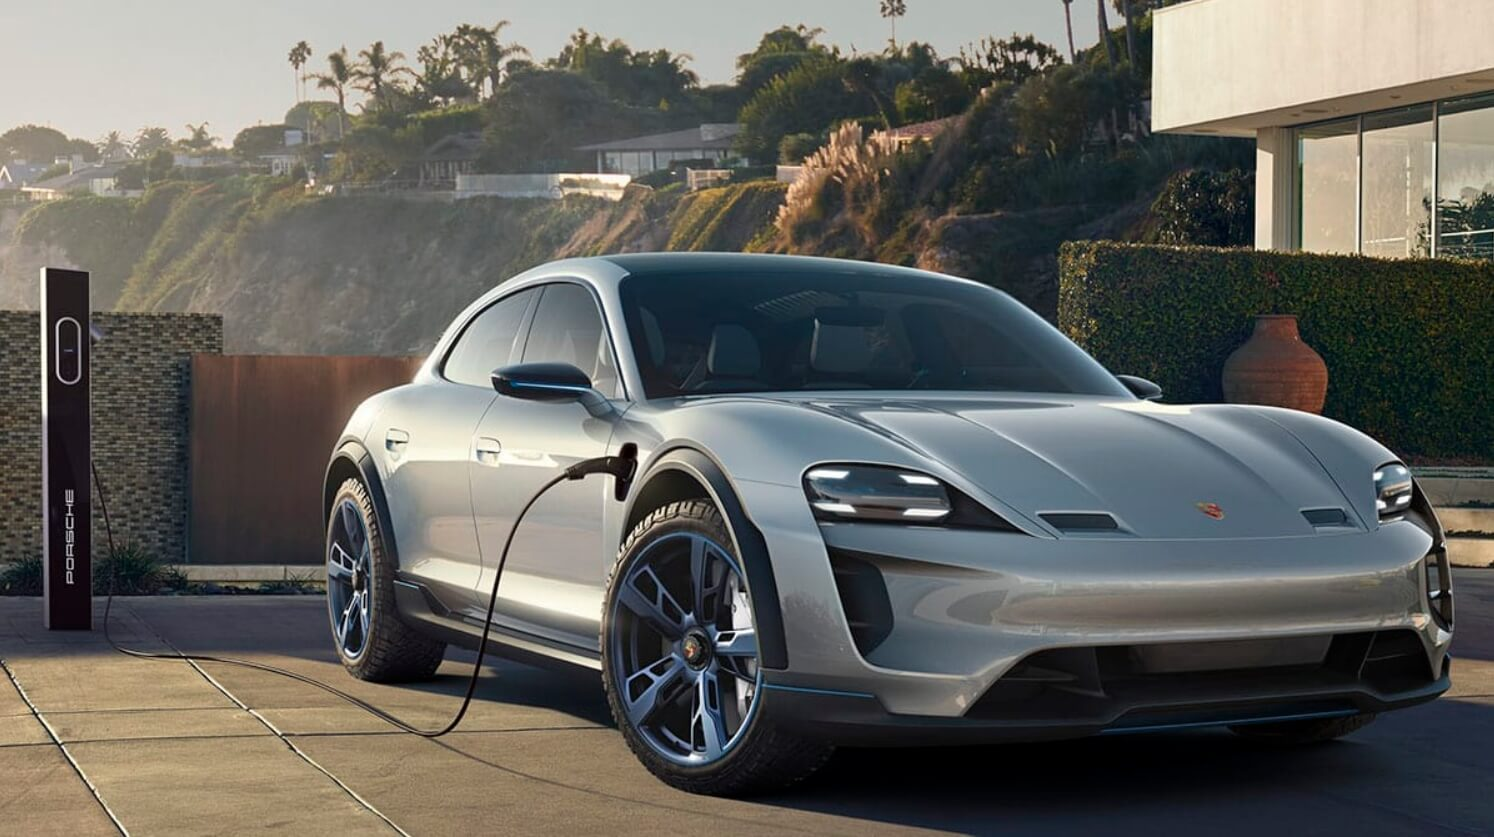 Porsche will build 500 electric vehicle charging stations in the US by end of 2019  TechSpot